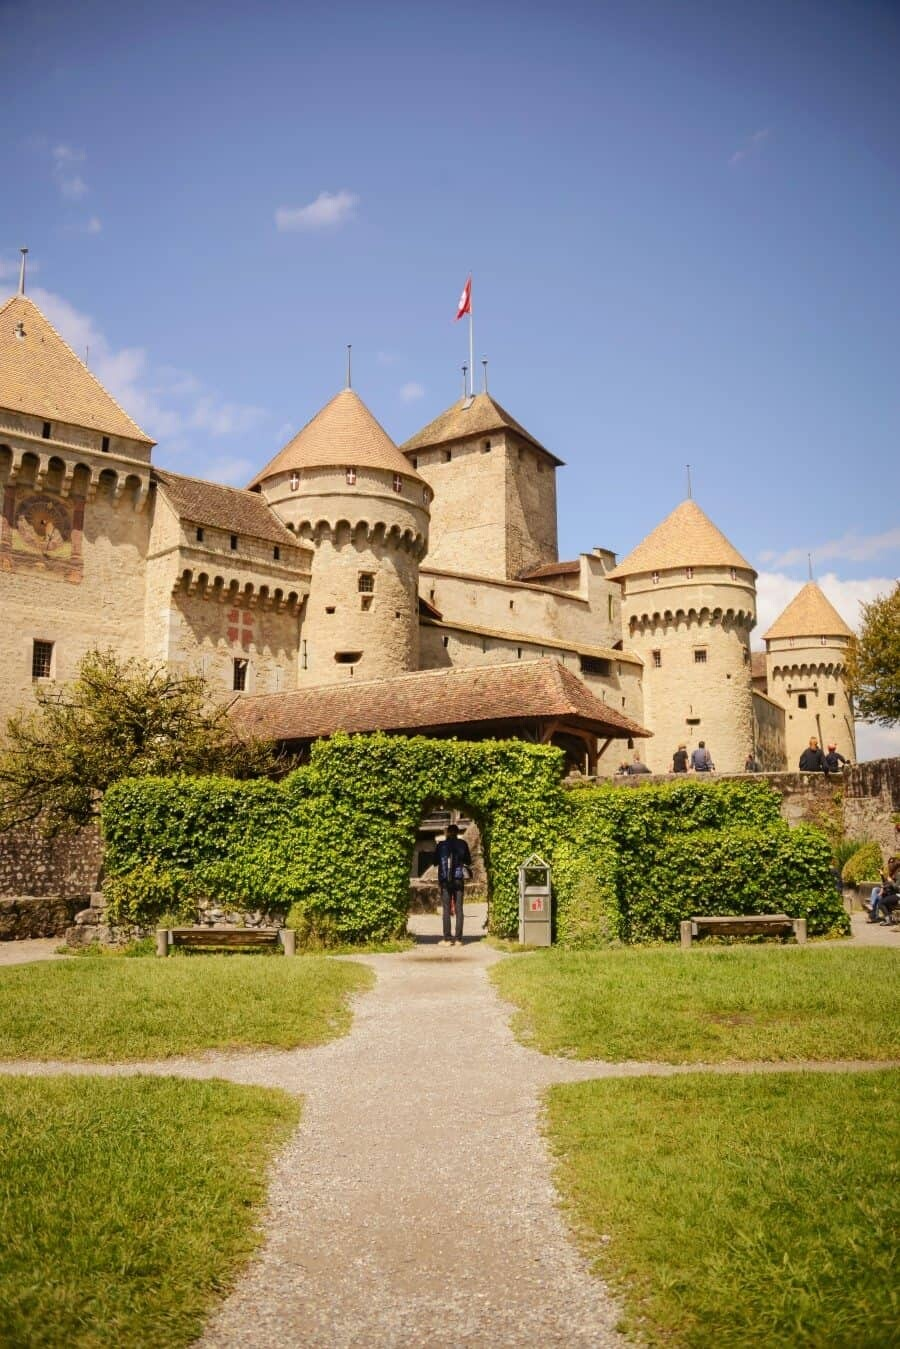 Chateau de Chillon, Switzerland Travel by The Wandering Lens 11